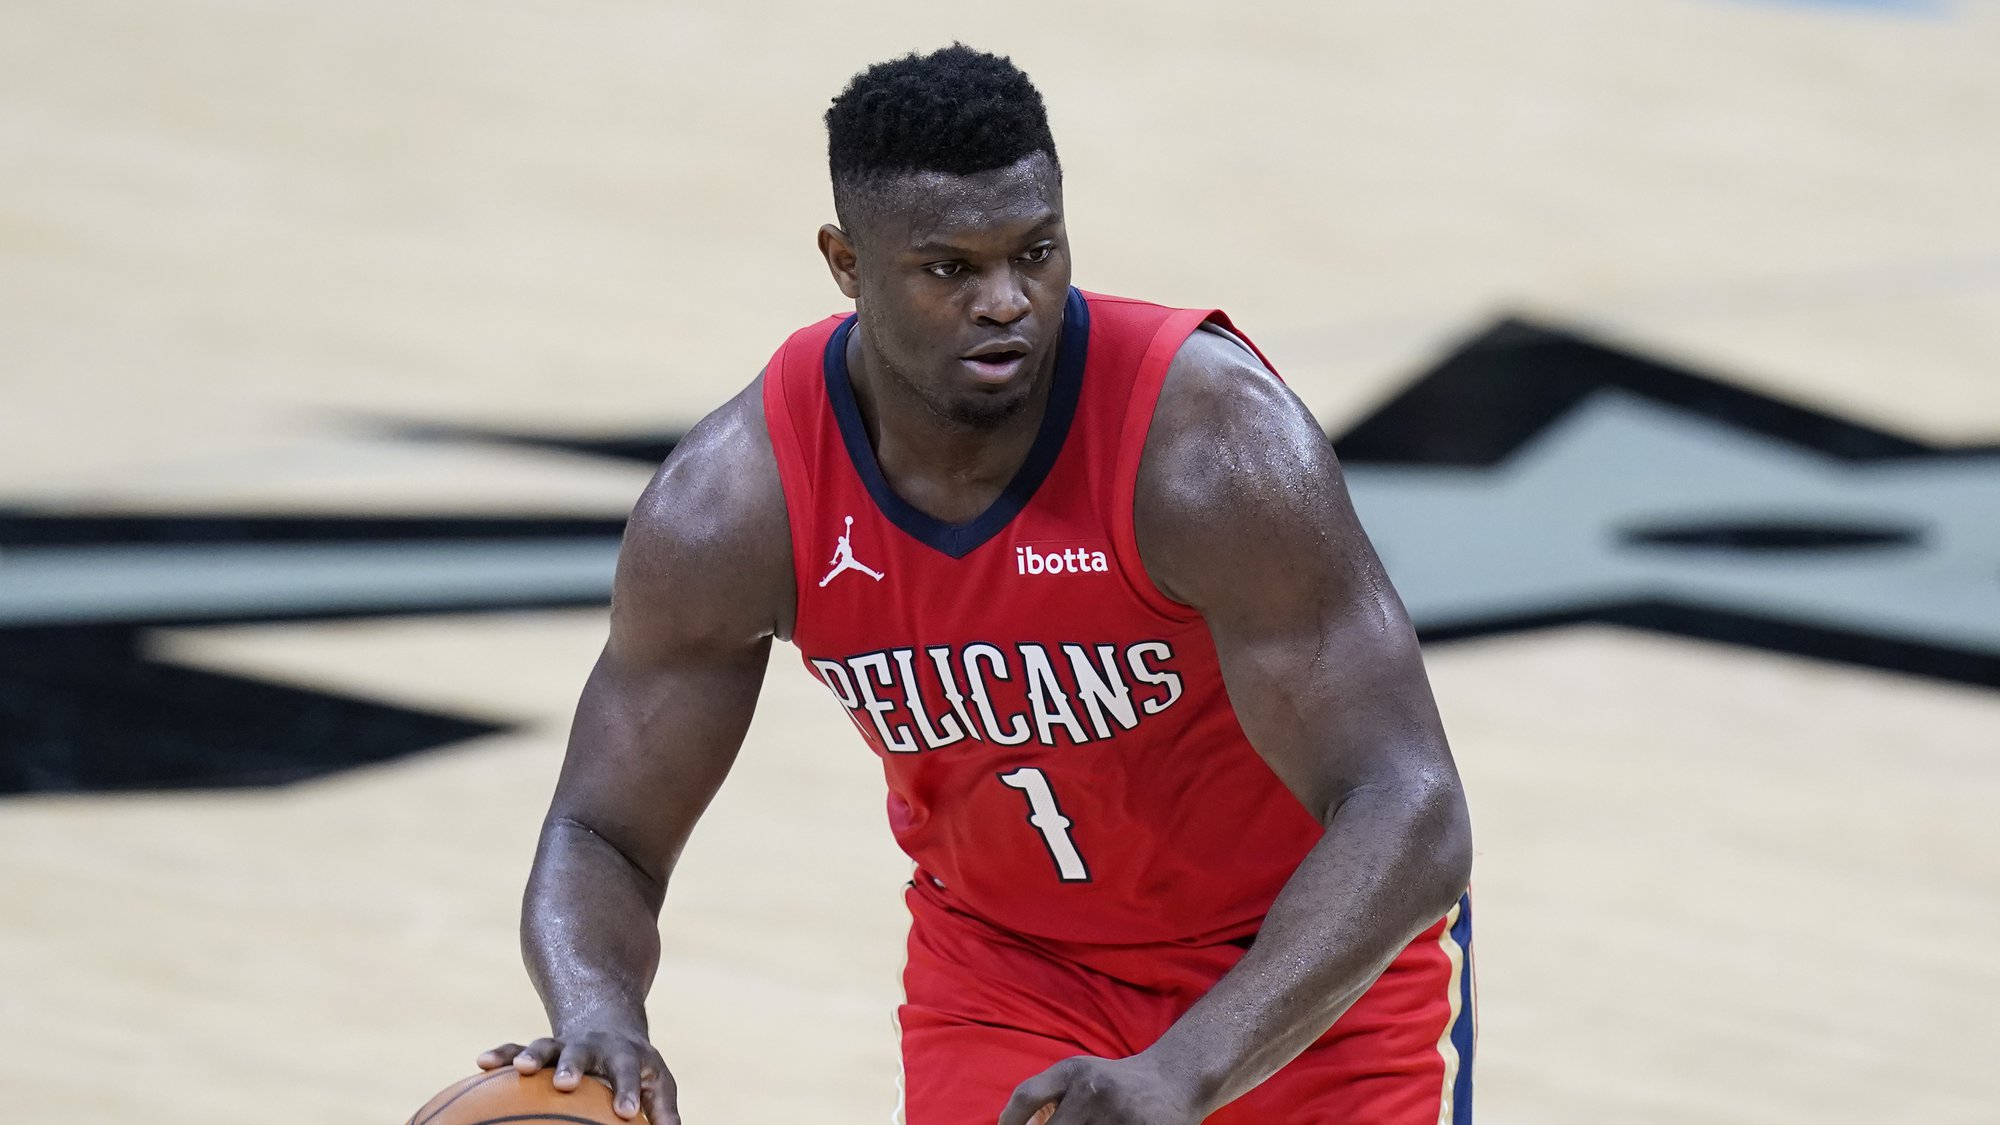 New Orleans Pelicans forward Zion Williamson (1) during the second half of an NBA basketball game against the San Antonio Spurs in San Antonio, Saturday, Feb. 27, 2021. (AP Photo/Eric Gay)